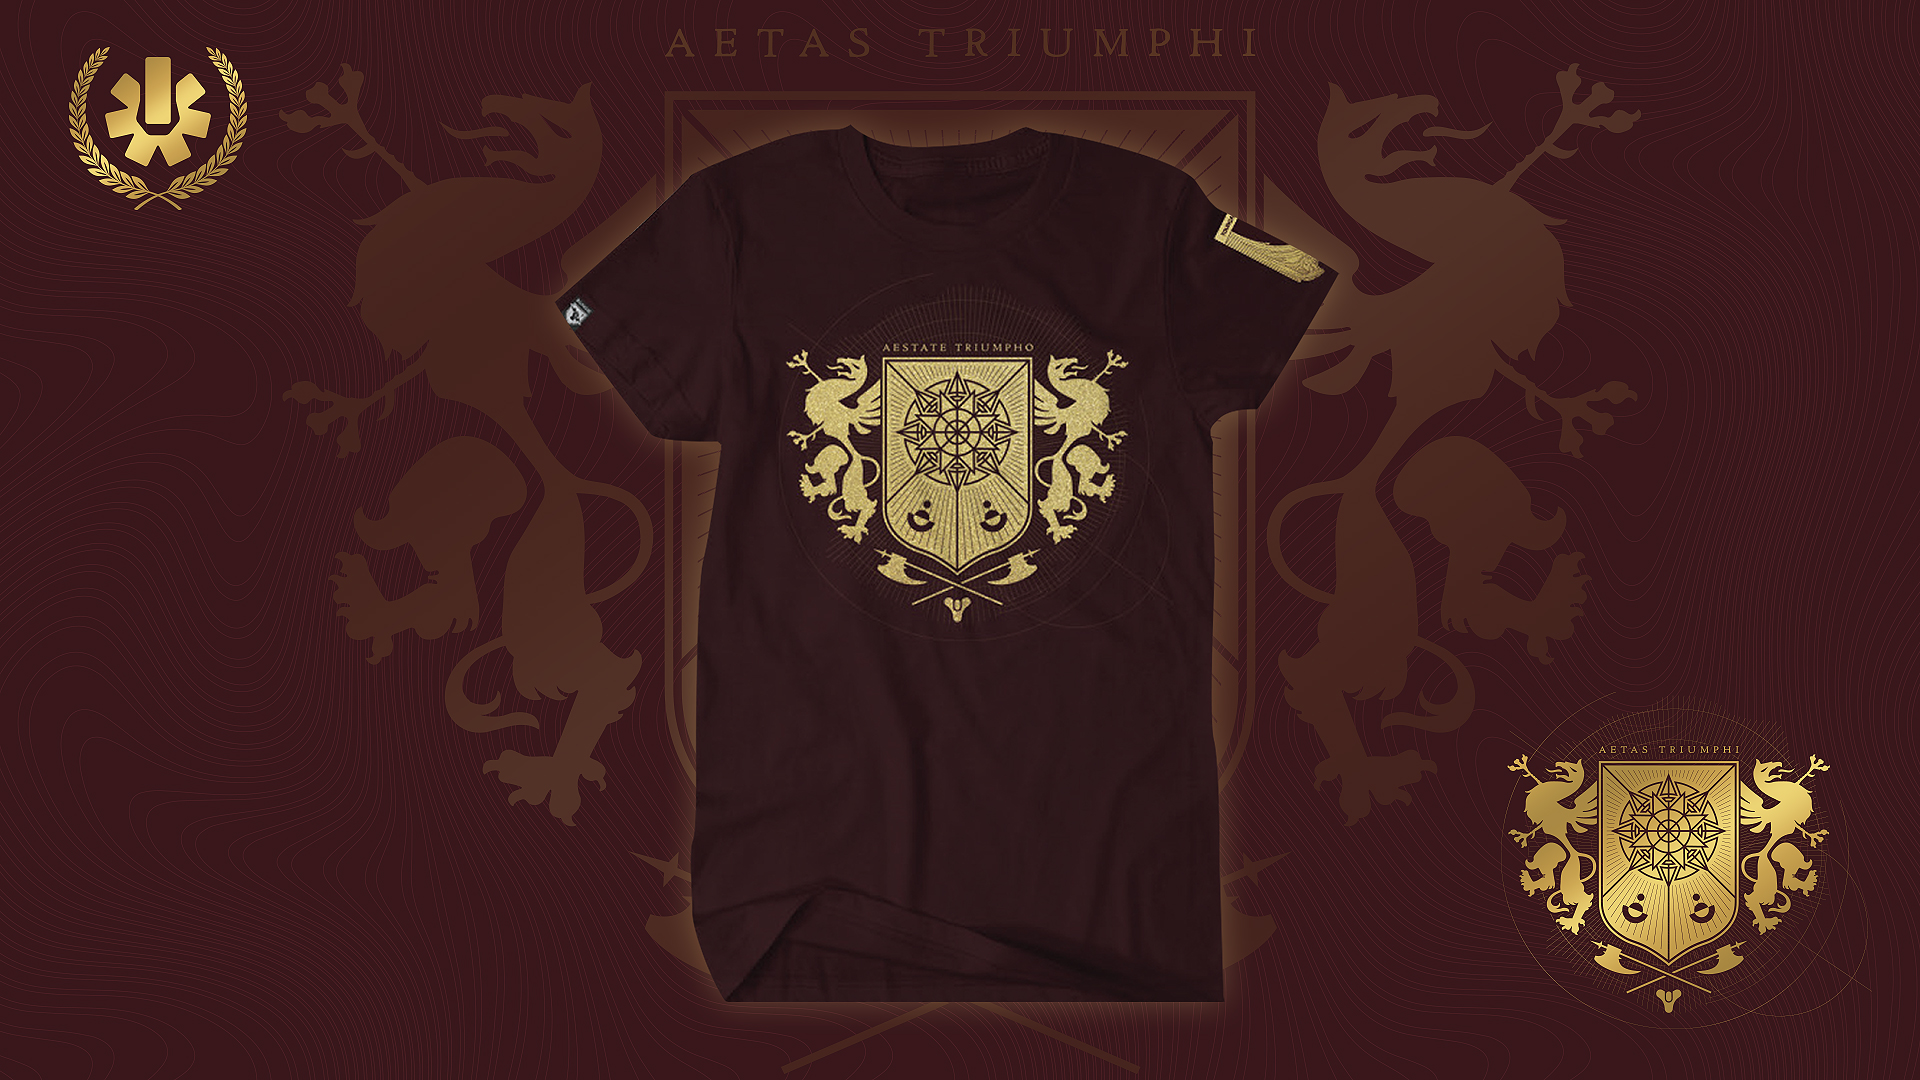 Destiny 2 moments of triumph year 2 shirt rewards